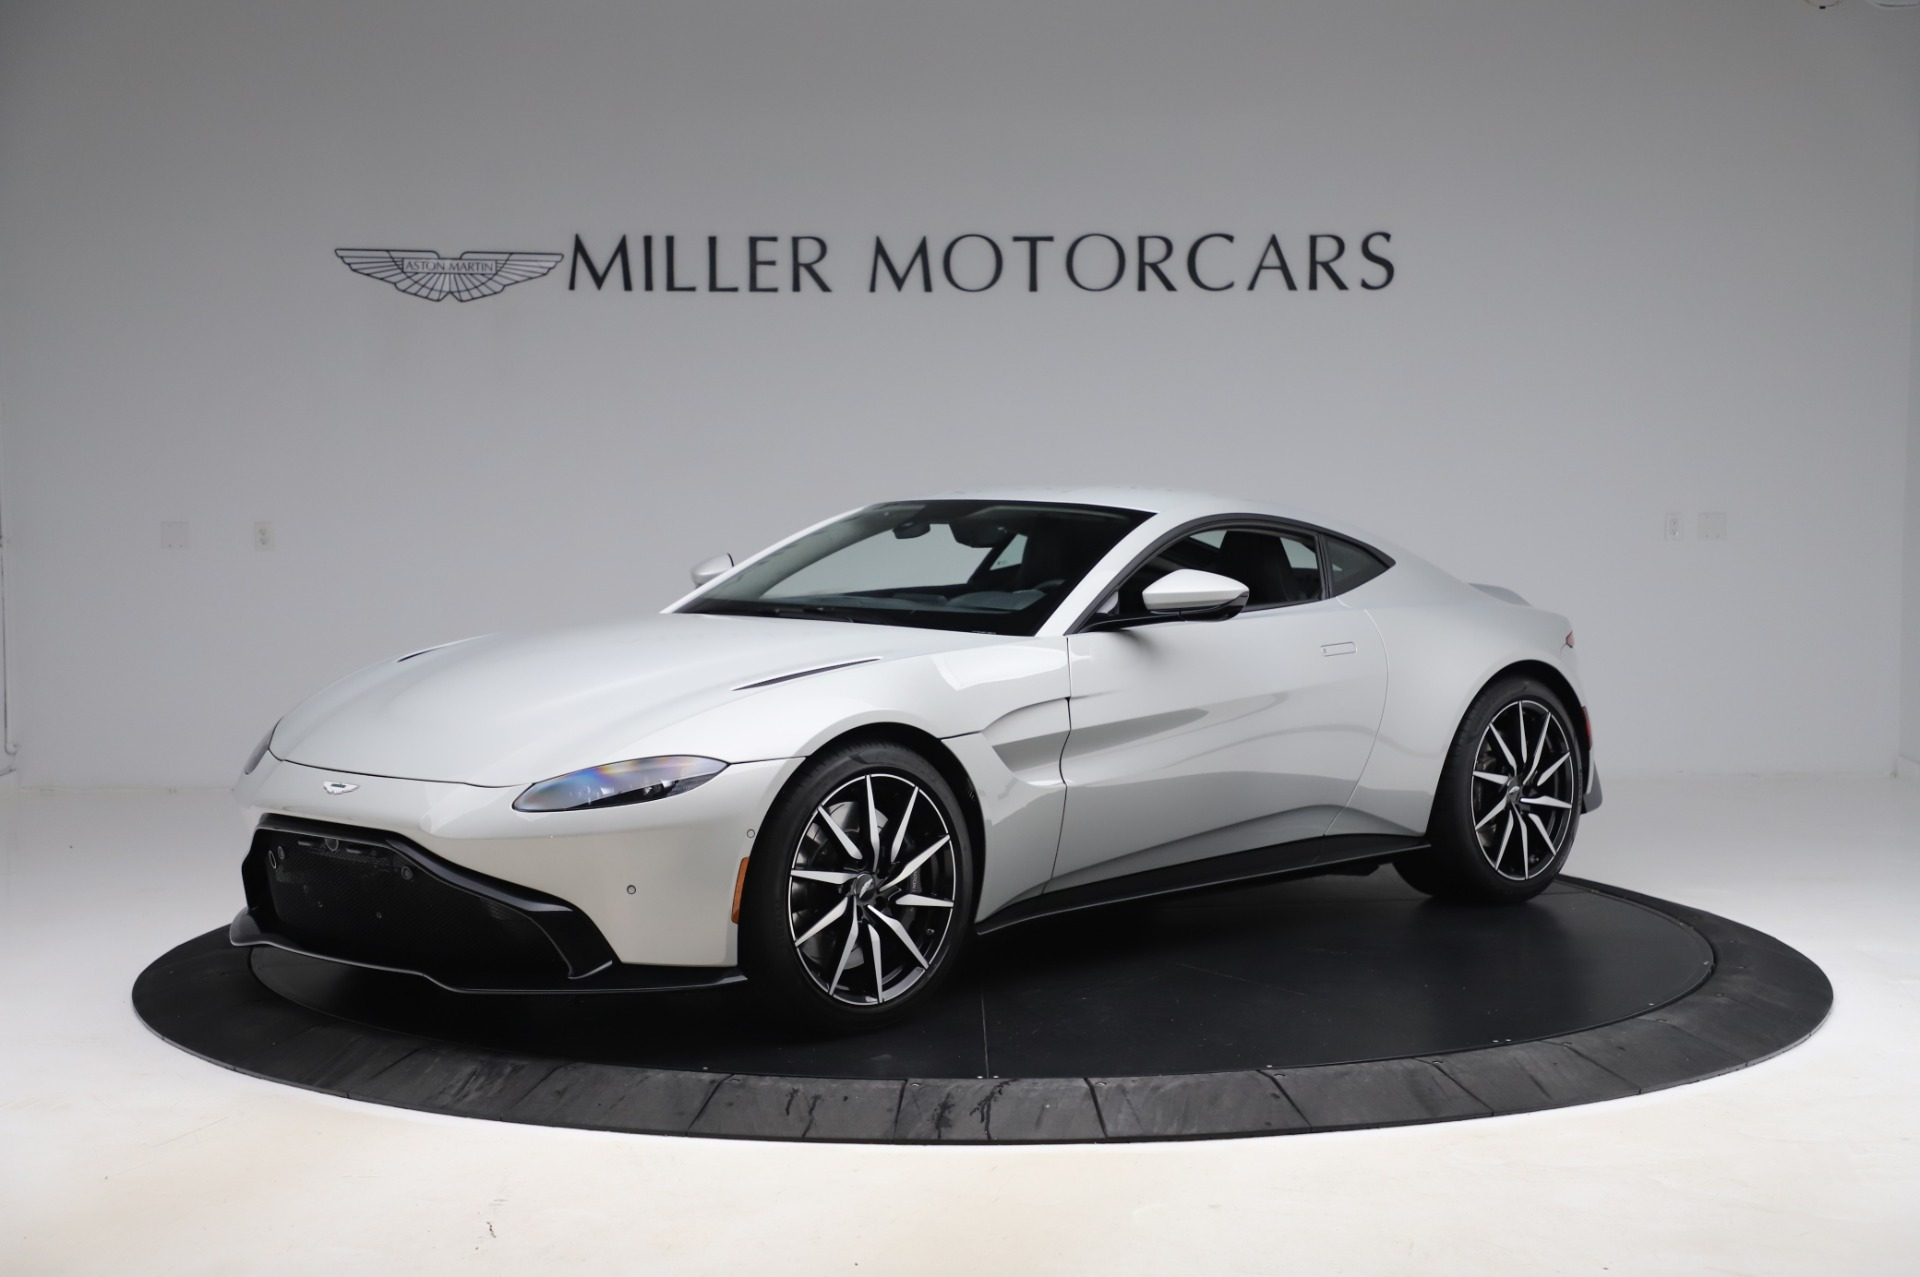 Used 2020 Aston Martin Vantage Coupe for sale $149,800 at Rolls-Royce Motor Cars Greenwich in Greenwich CT 06830 1